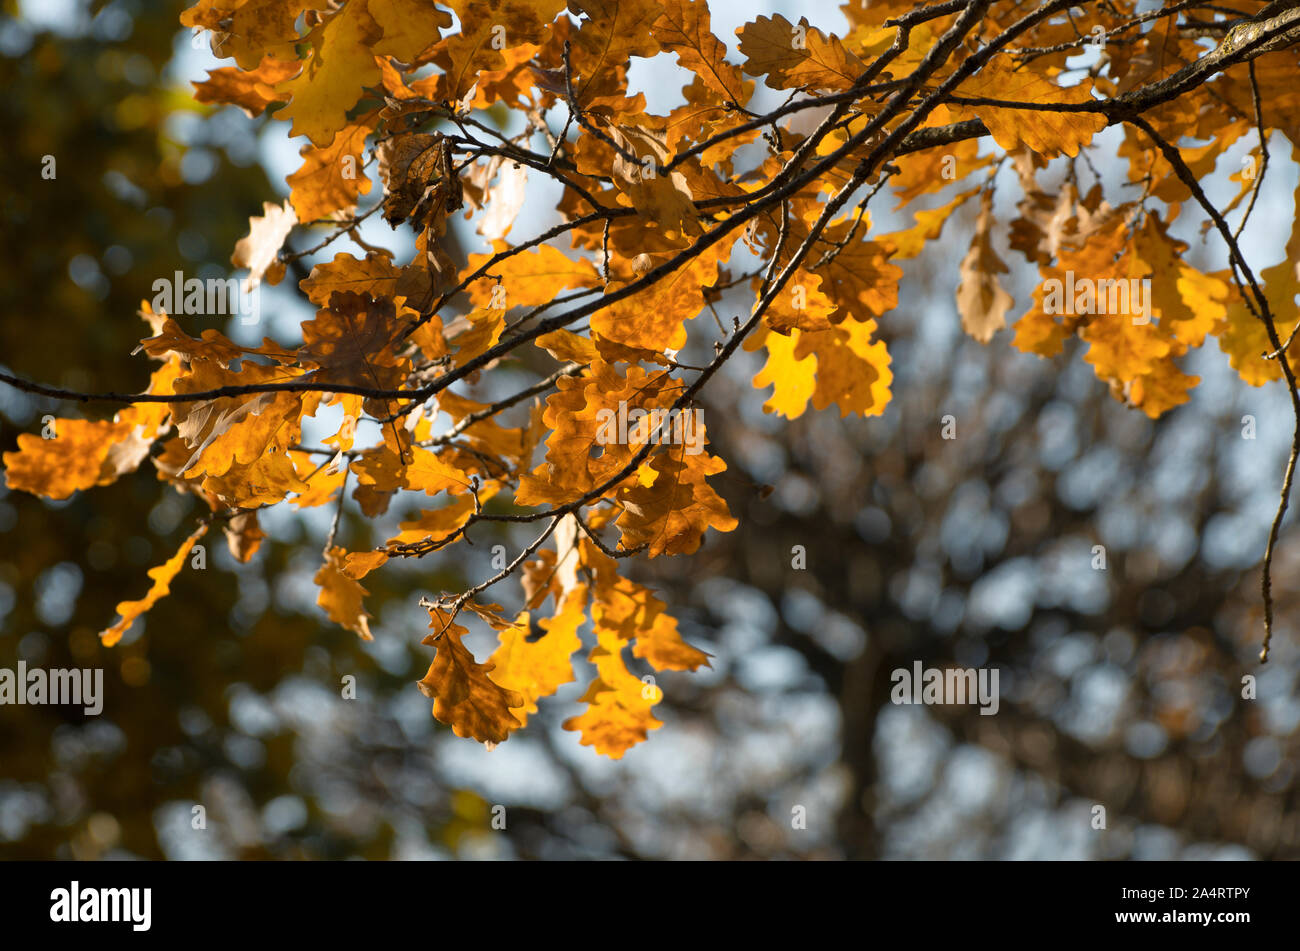 Sunlit oak branch with yellow leaves in Indian summer on a blurred background Stock Photo